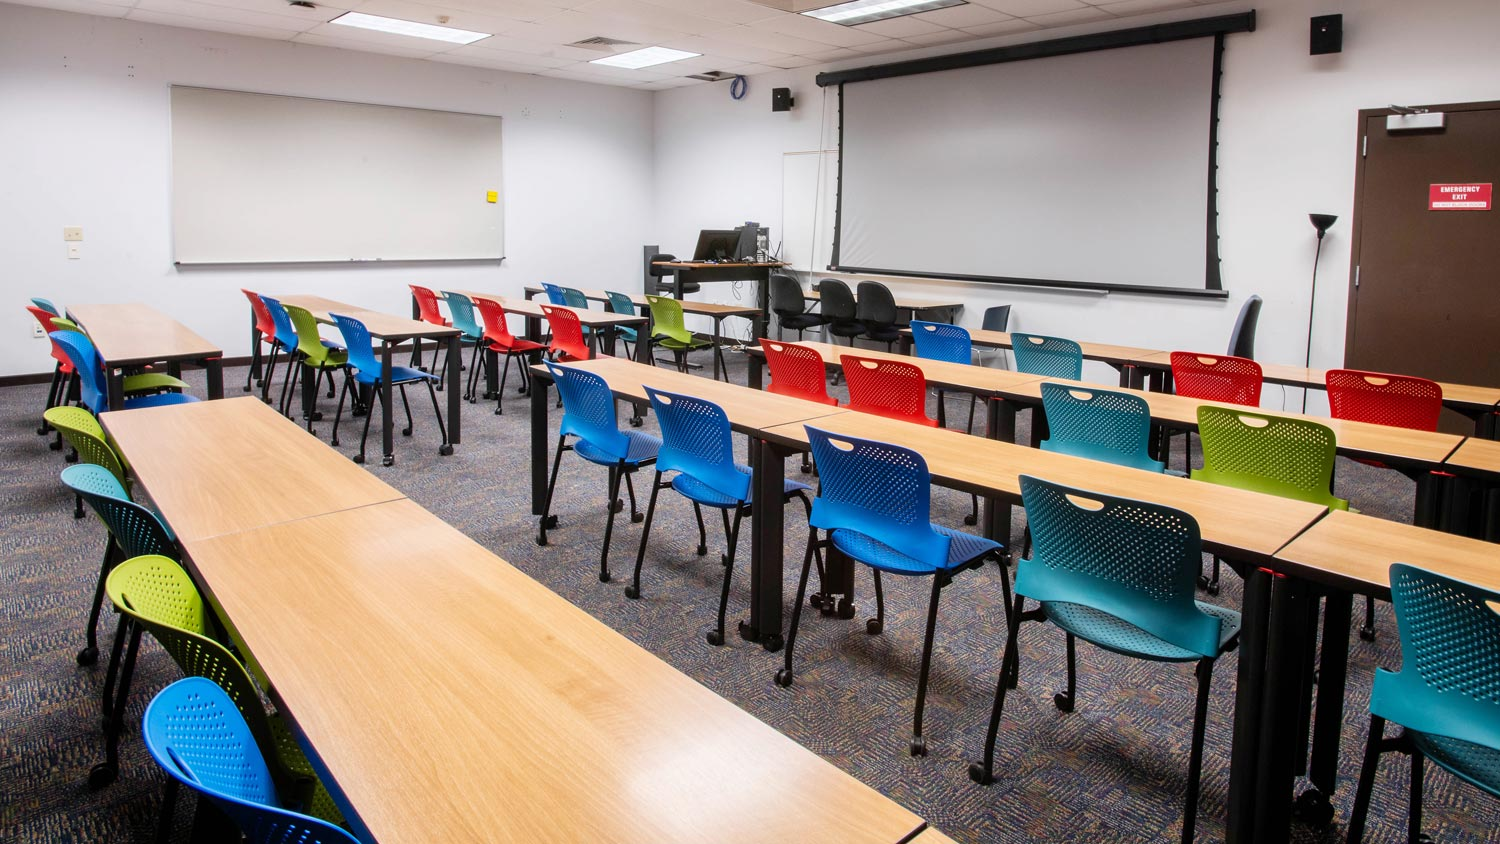 Row of desks in a classroom with colorful chairs